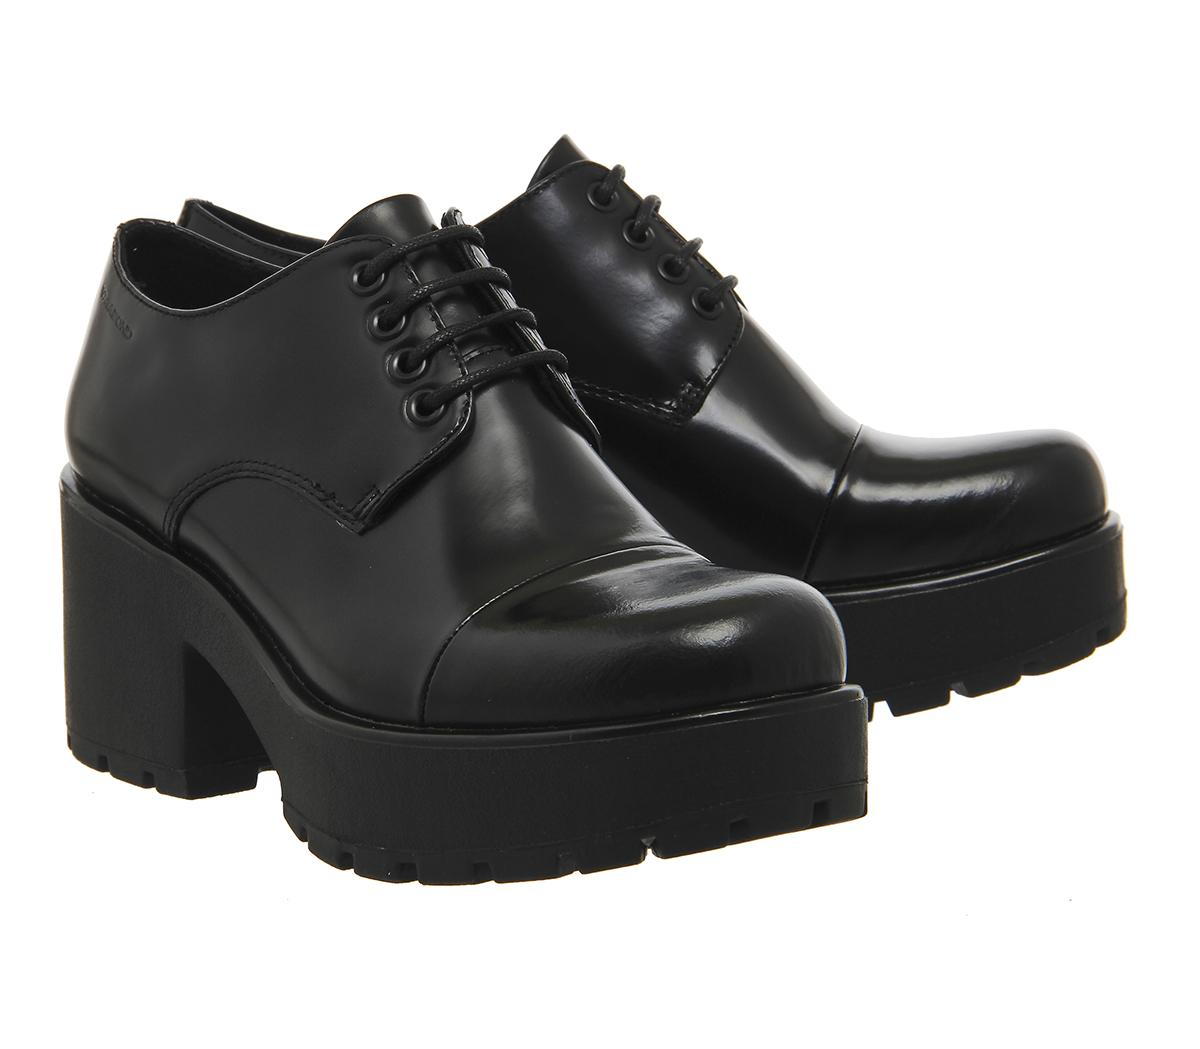 Vagabond Vagabond Shoe: Vagabond Dioon Shoes In Black